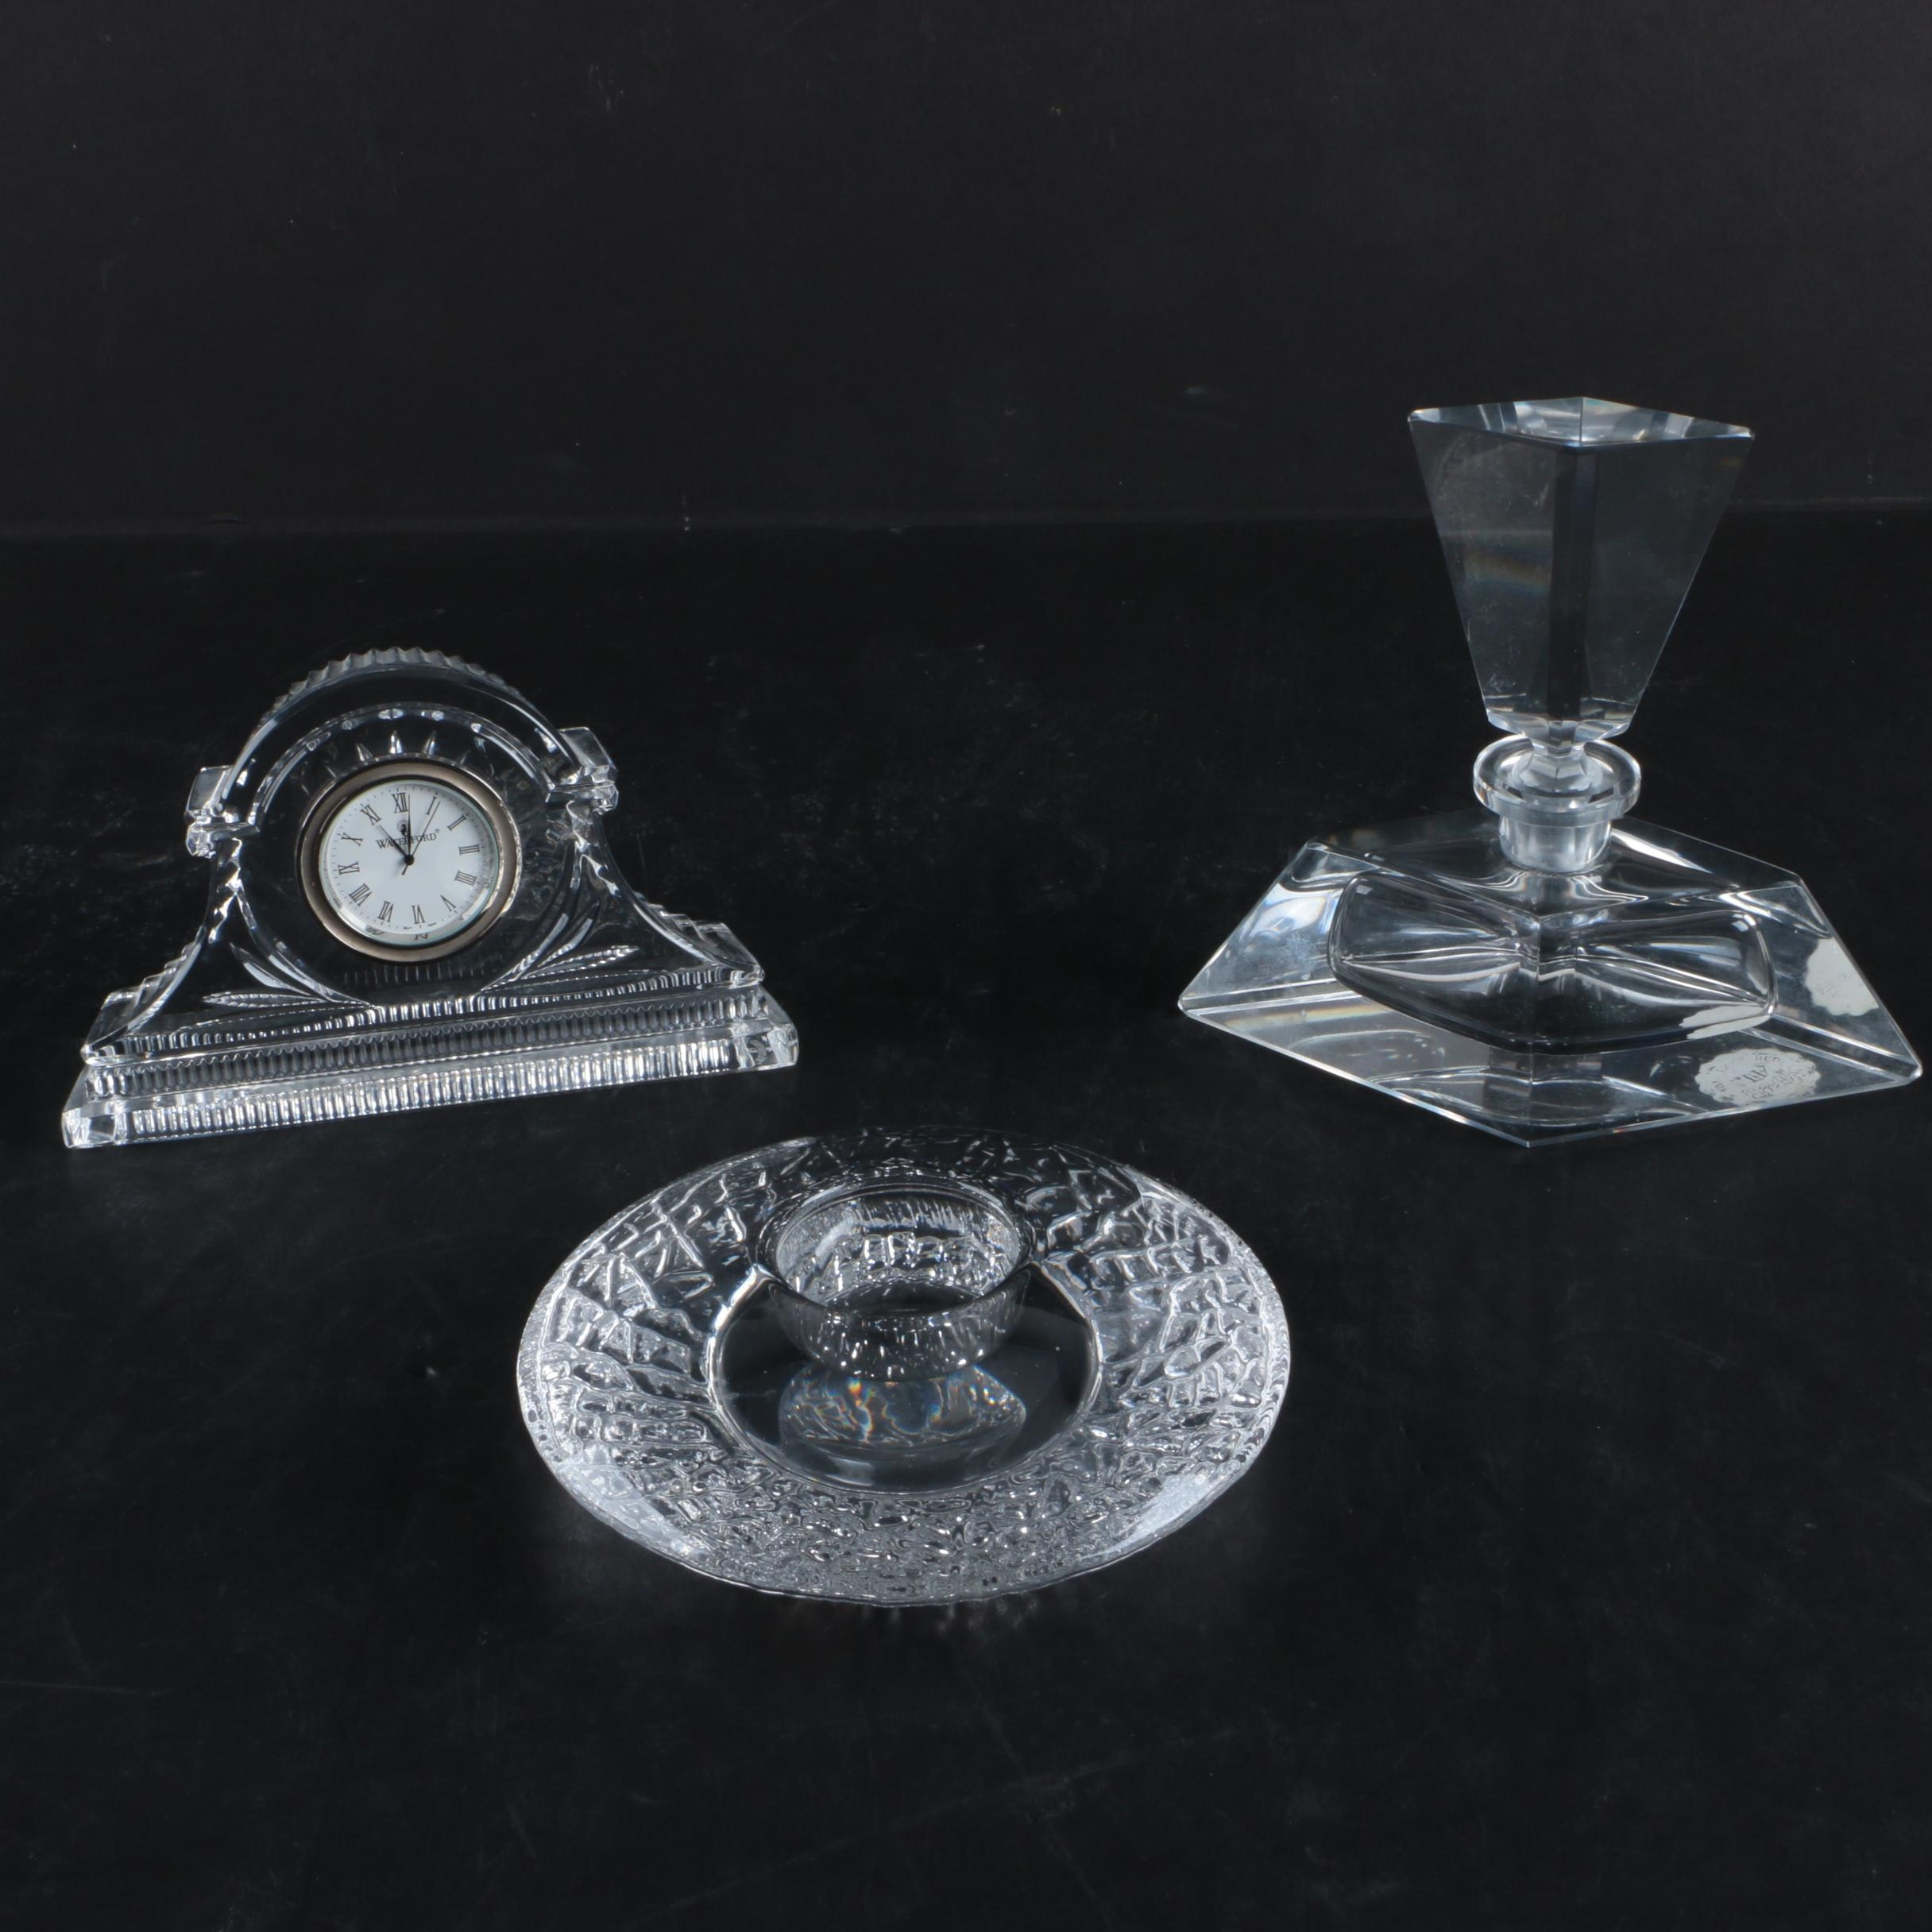 Crystal Decor including Waterford and Orrefors